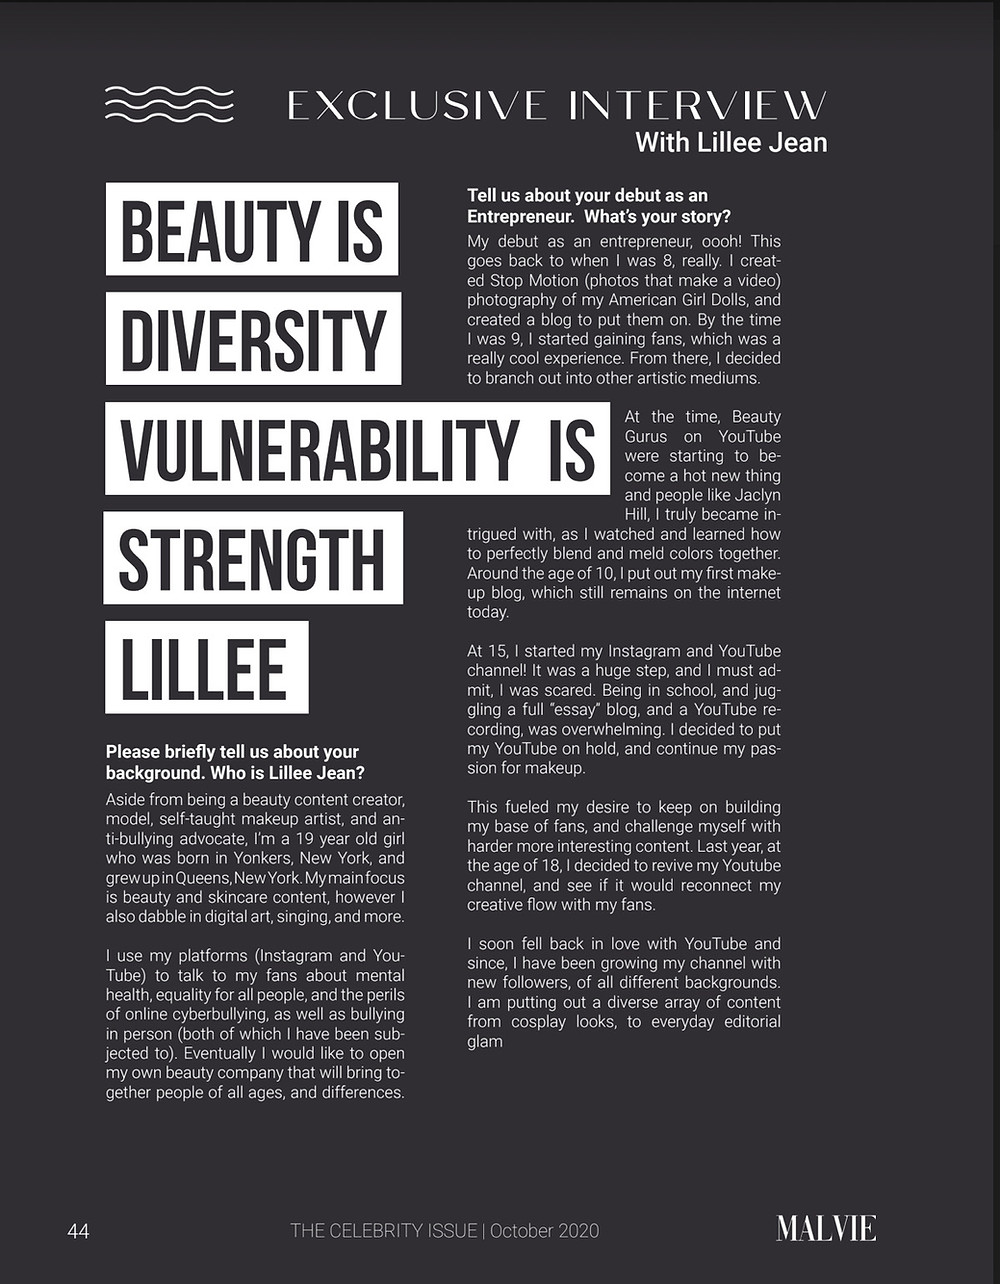 Malvie FRENCH Magazine Lillee Jean CYBERBULLYING INTERVIEW